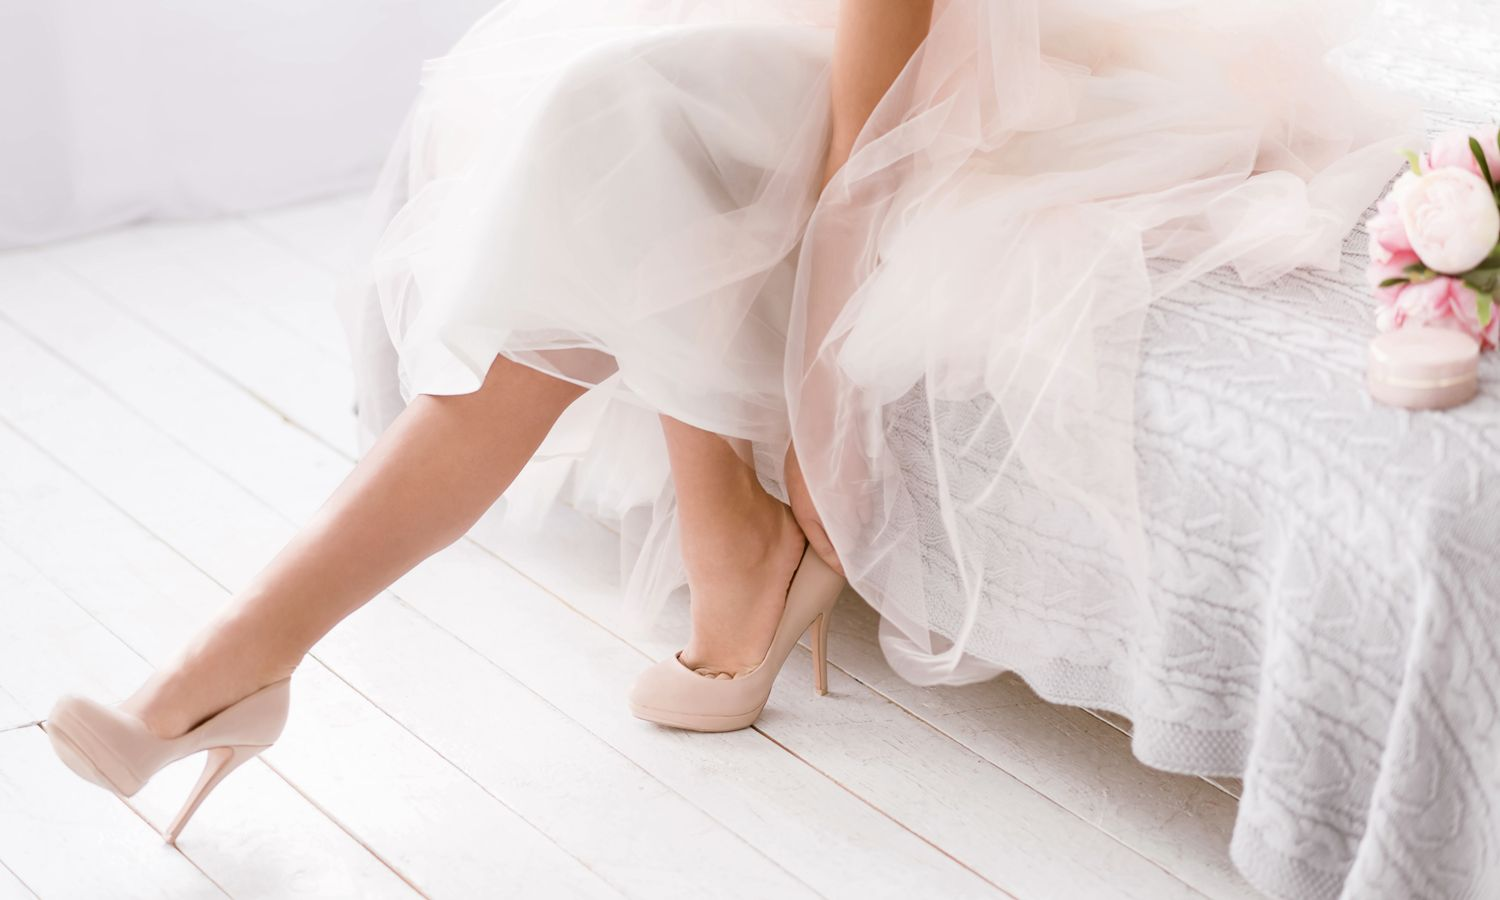 12 Classic Accessories For An All-White Wedding